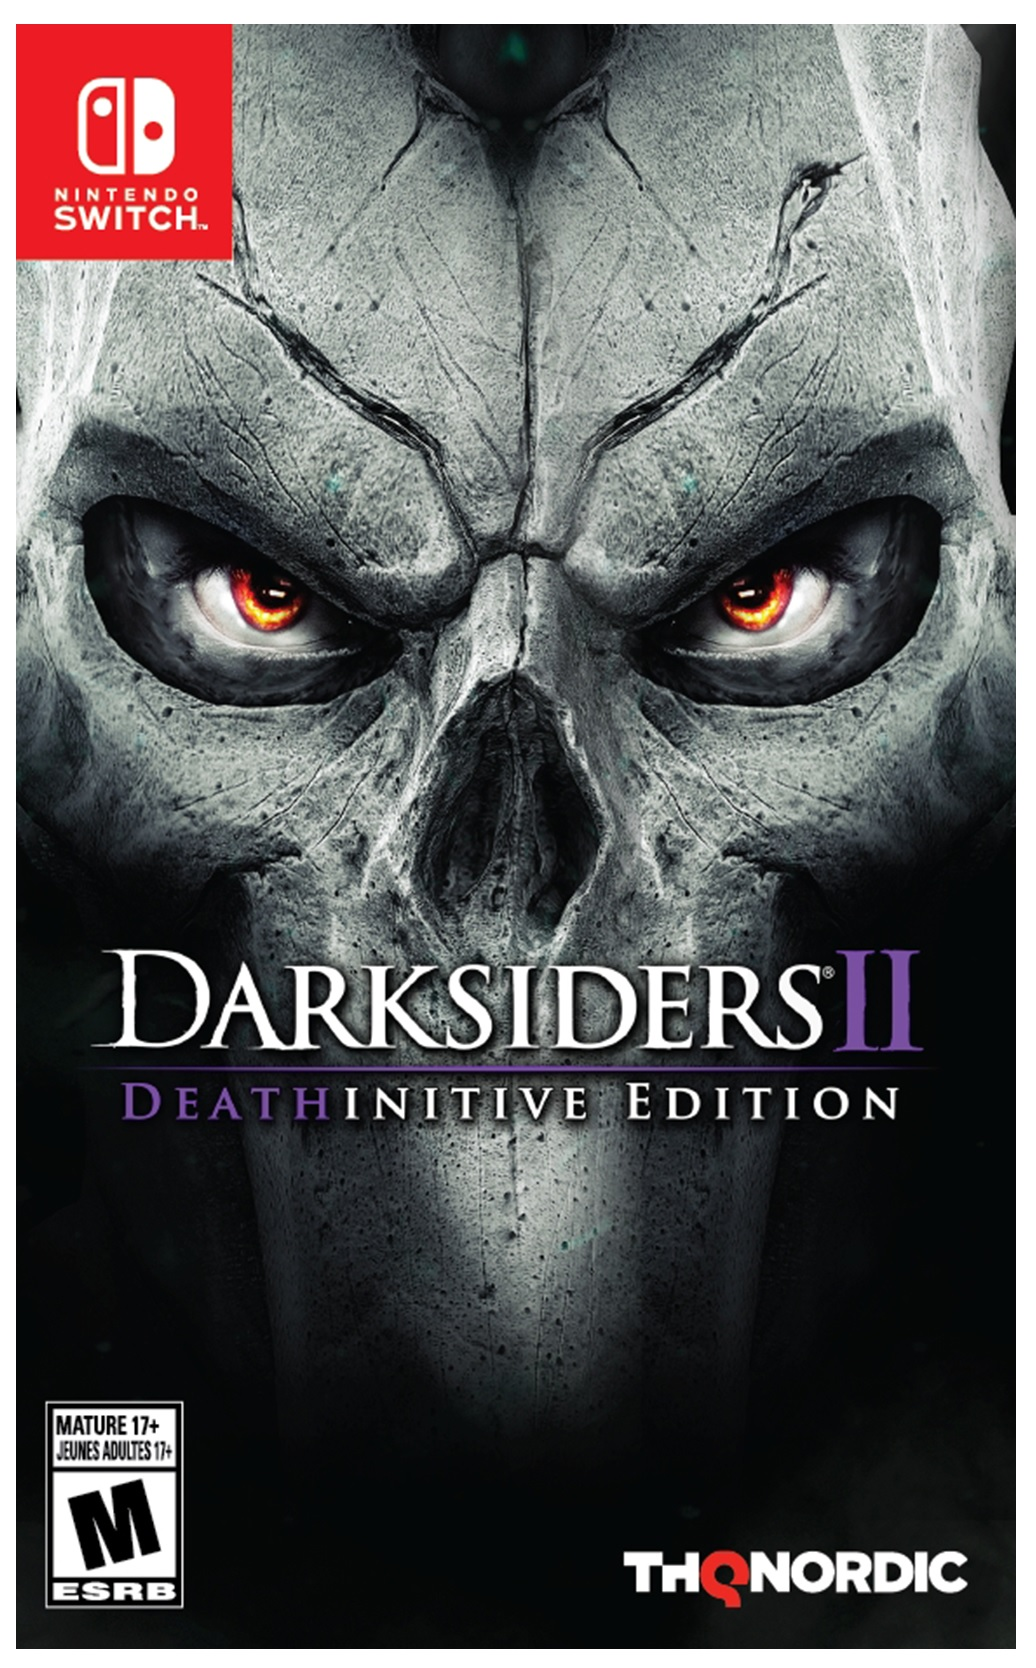 THQ Darksiders II Deathinitive Edition Nintendo Switch Game